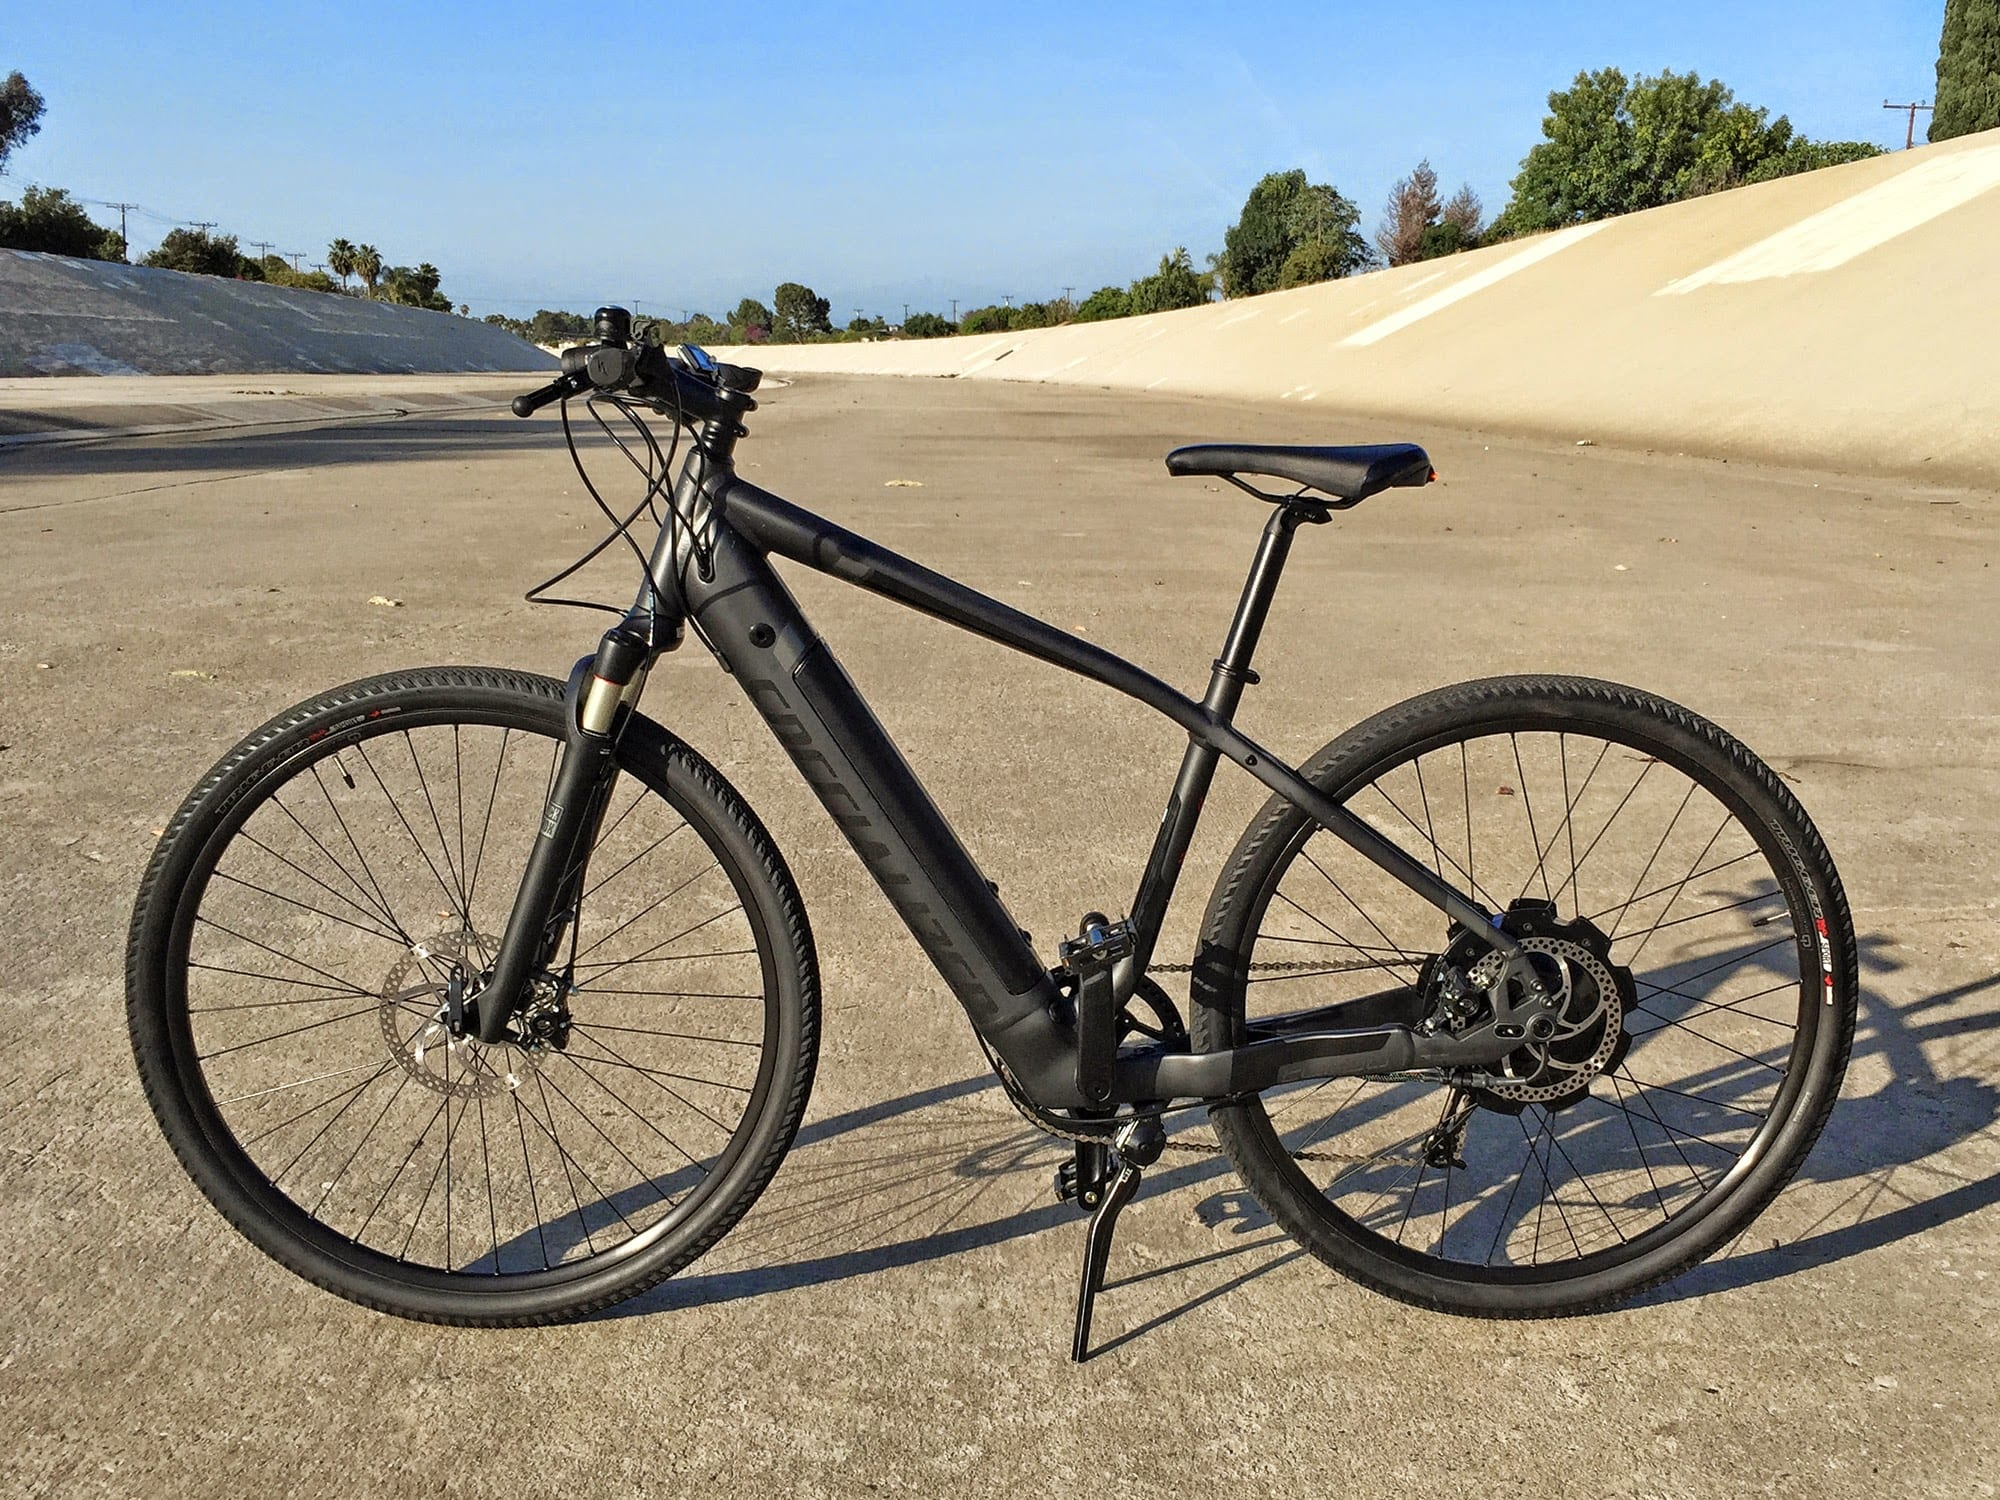 Specialized Turbo Electric Bike >> Specialized Turbo X Review - Prices, Specs, Videos, Photos